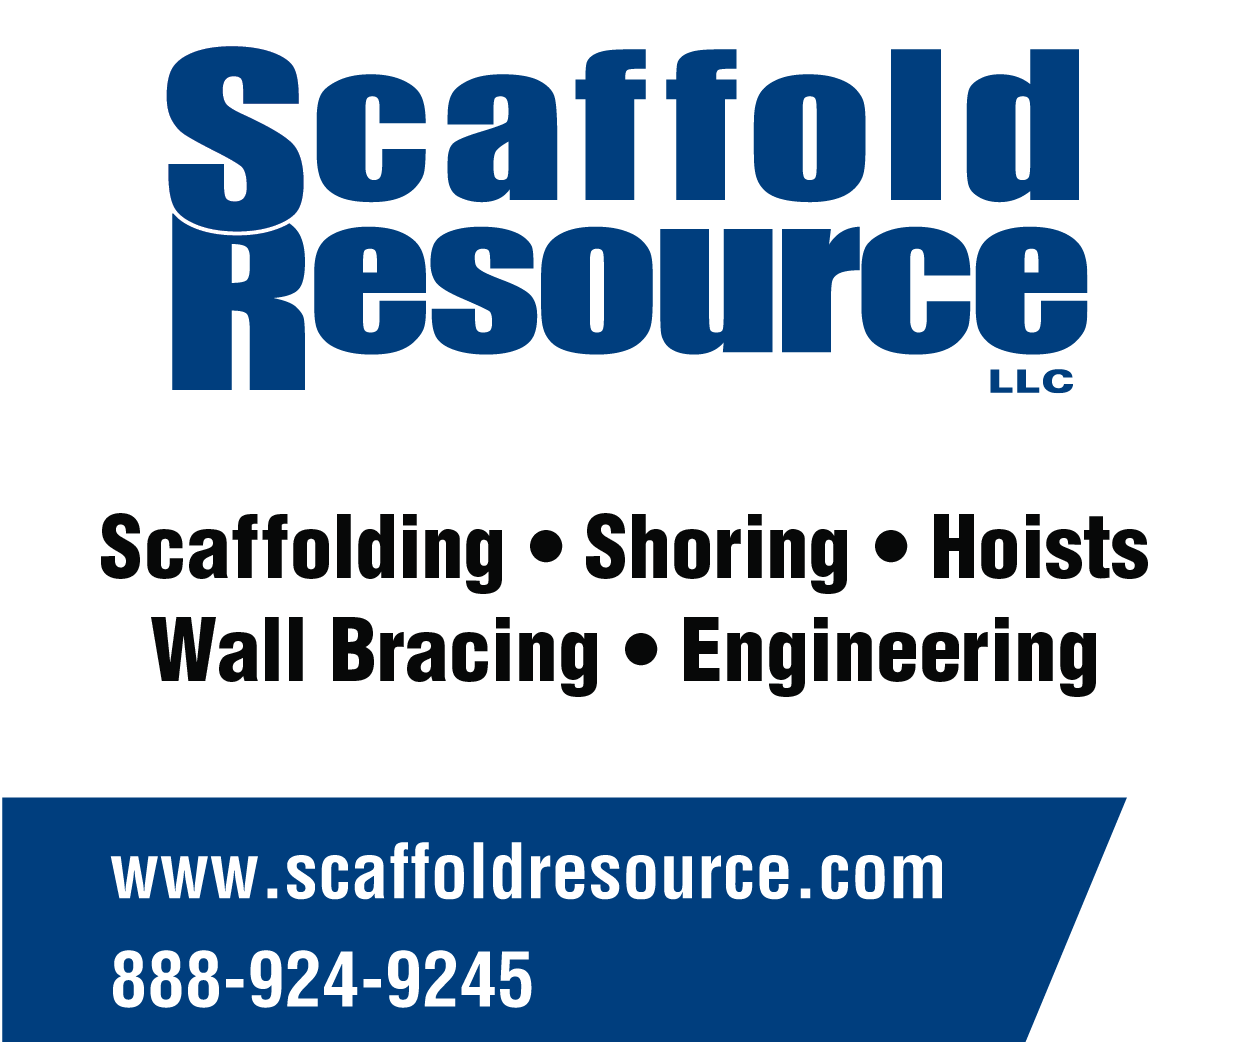 Scaffold Resource LLC